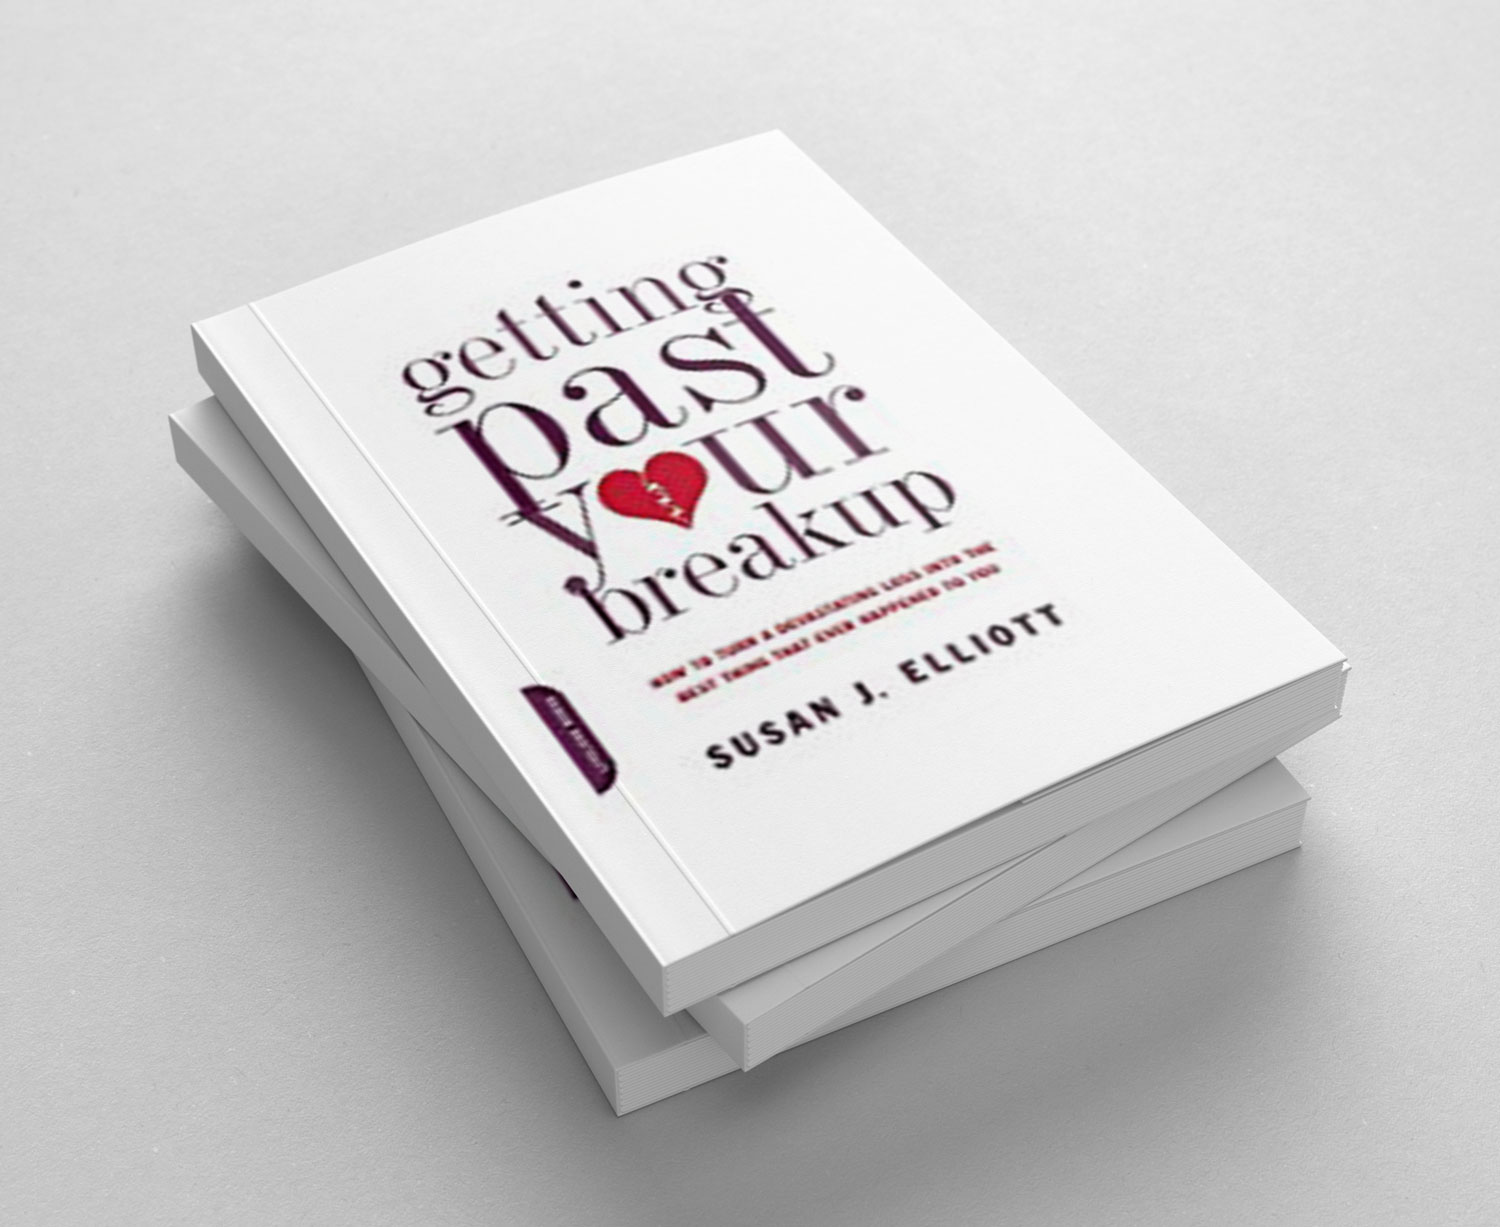 Best Breakup Books of All Time!